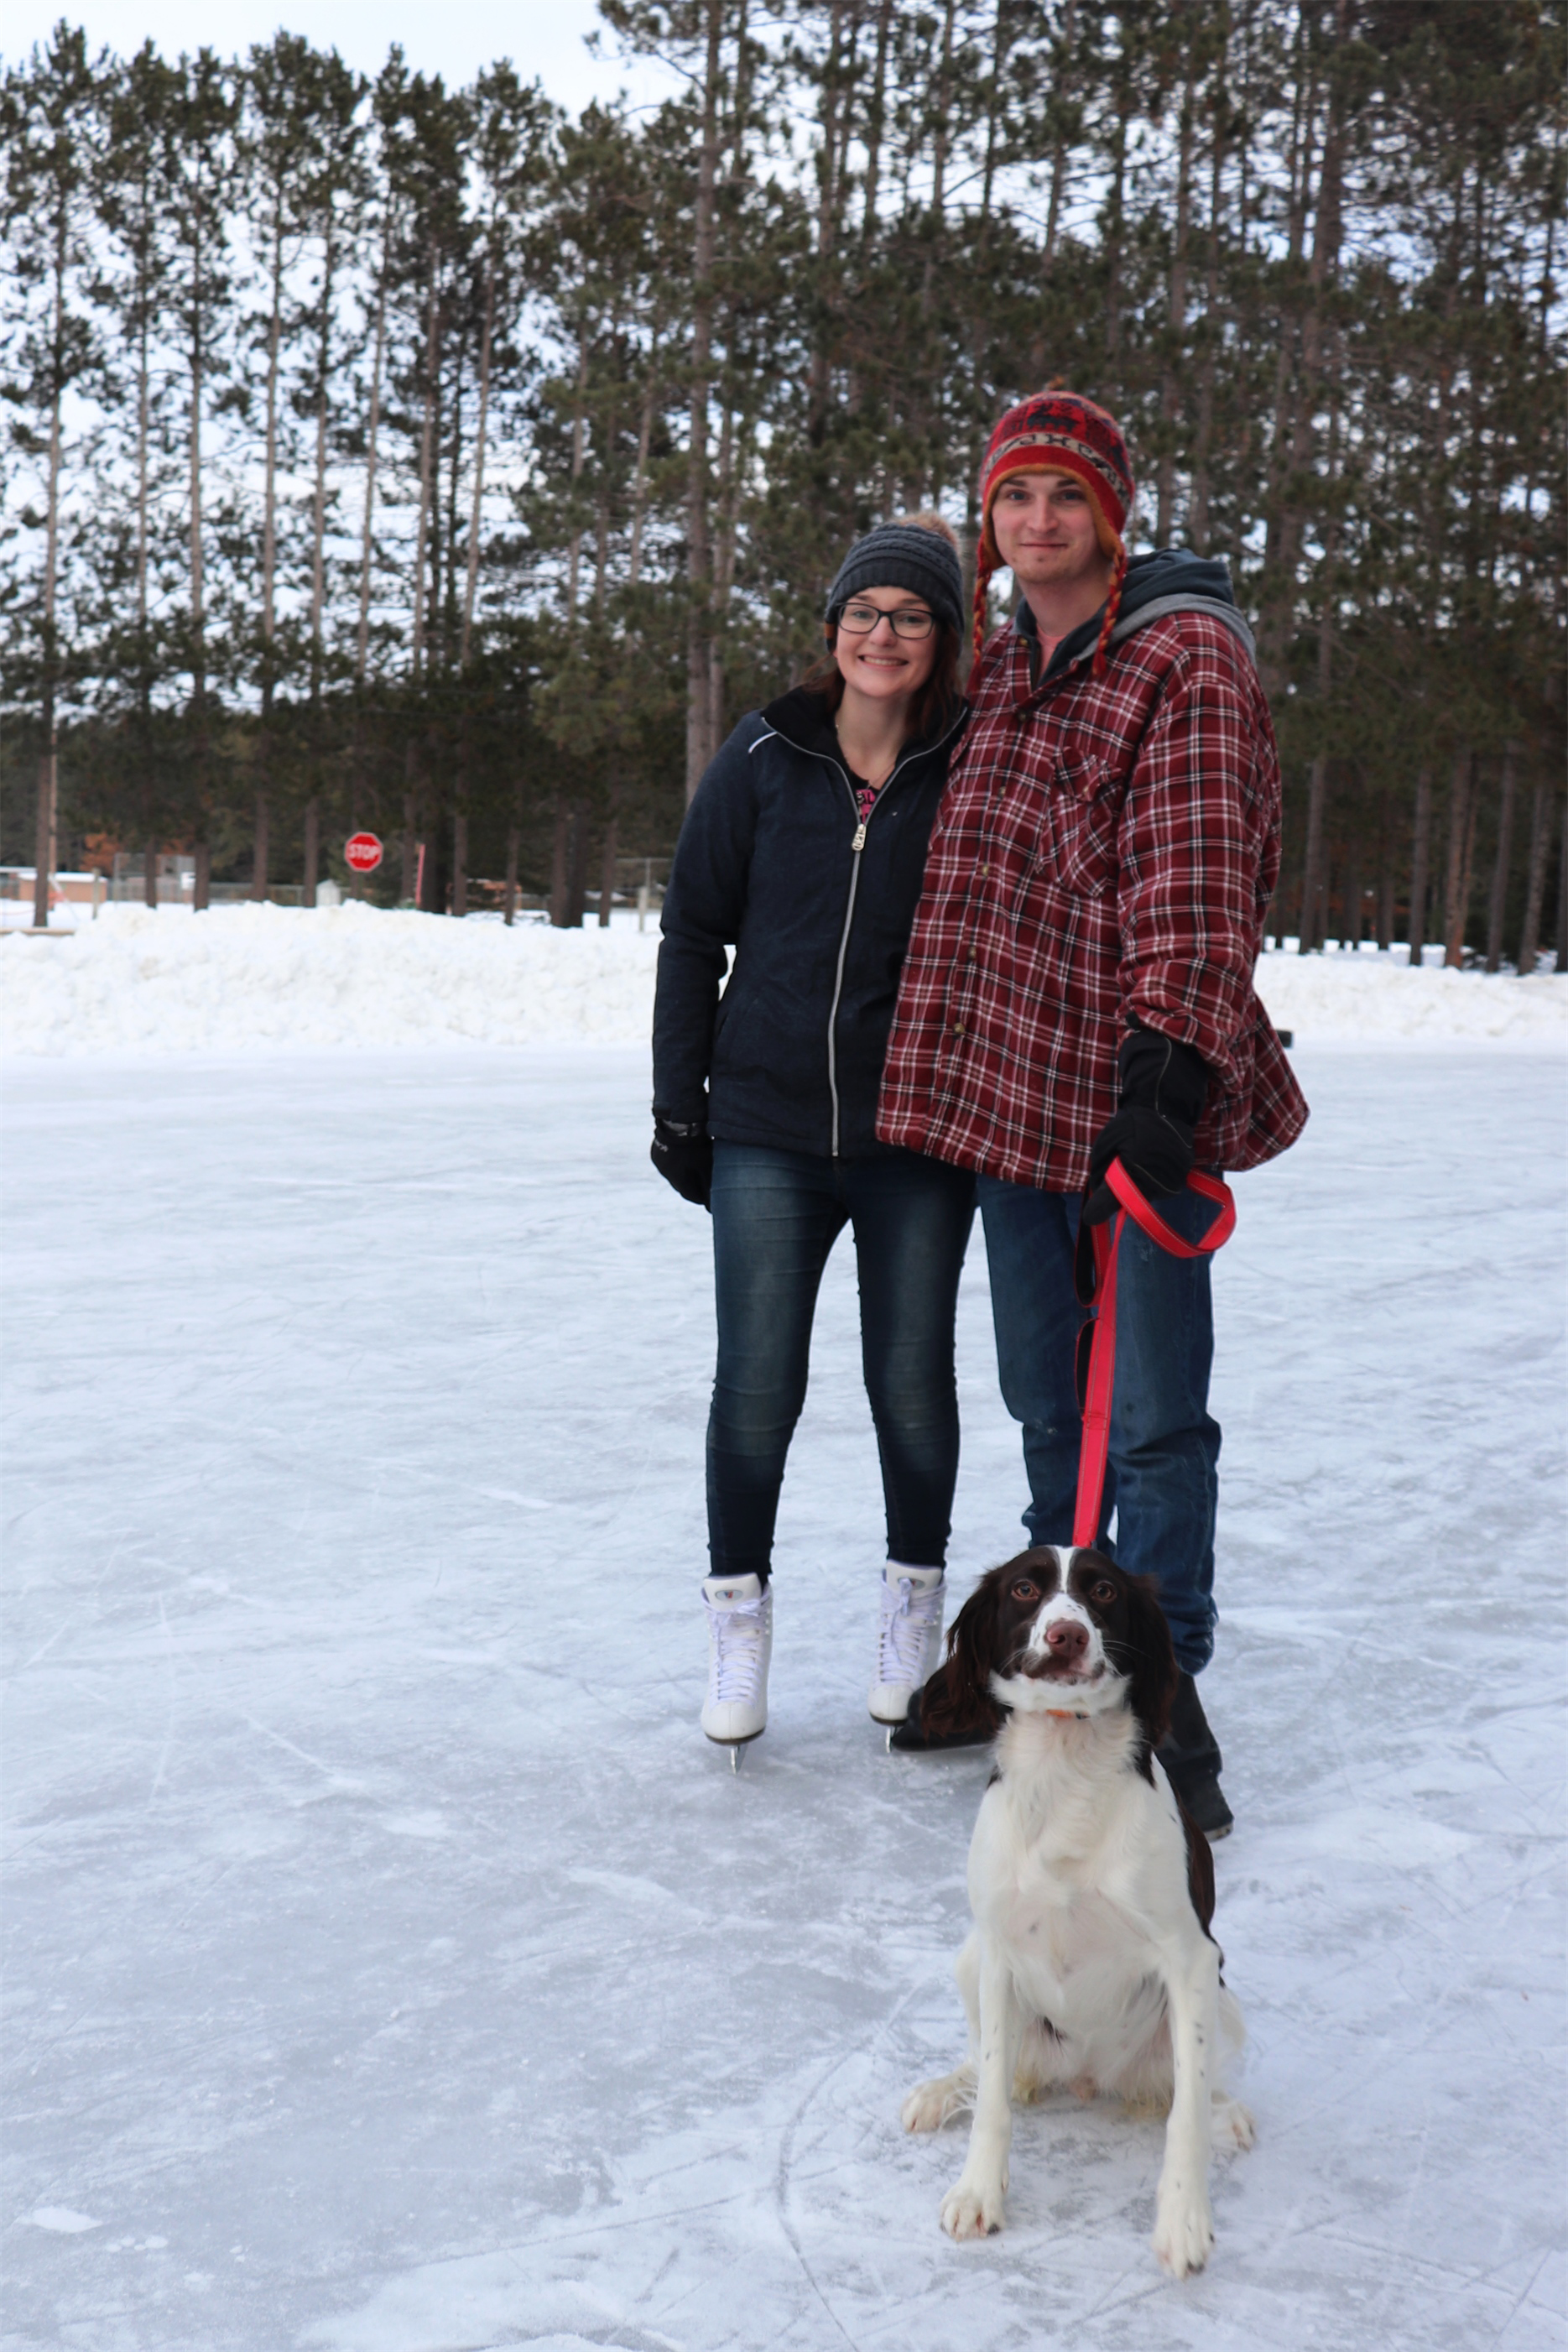 Addison and Caleb play with their dog Jolene on the ice in Woodruff. Kim Johnson photo